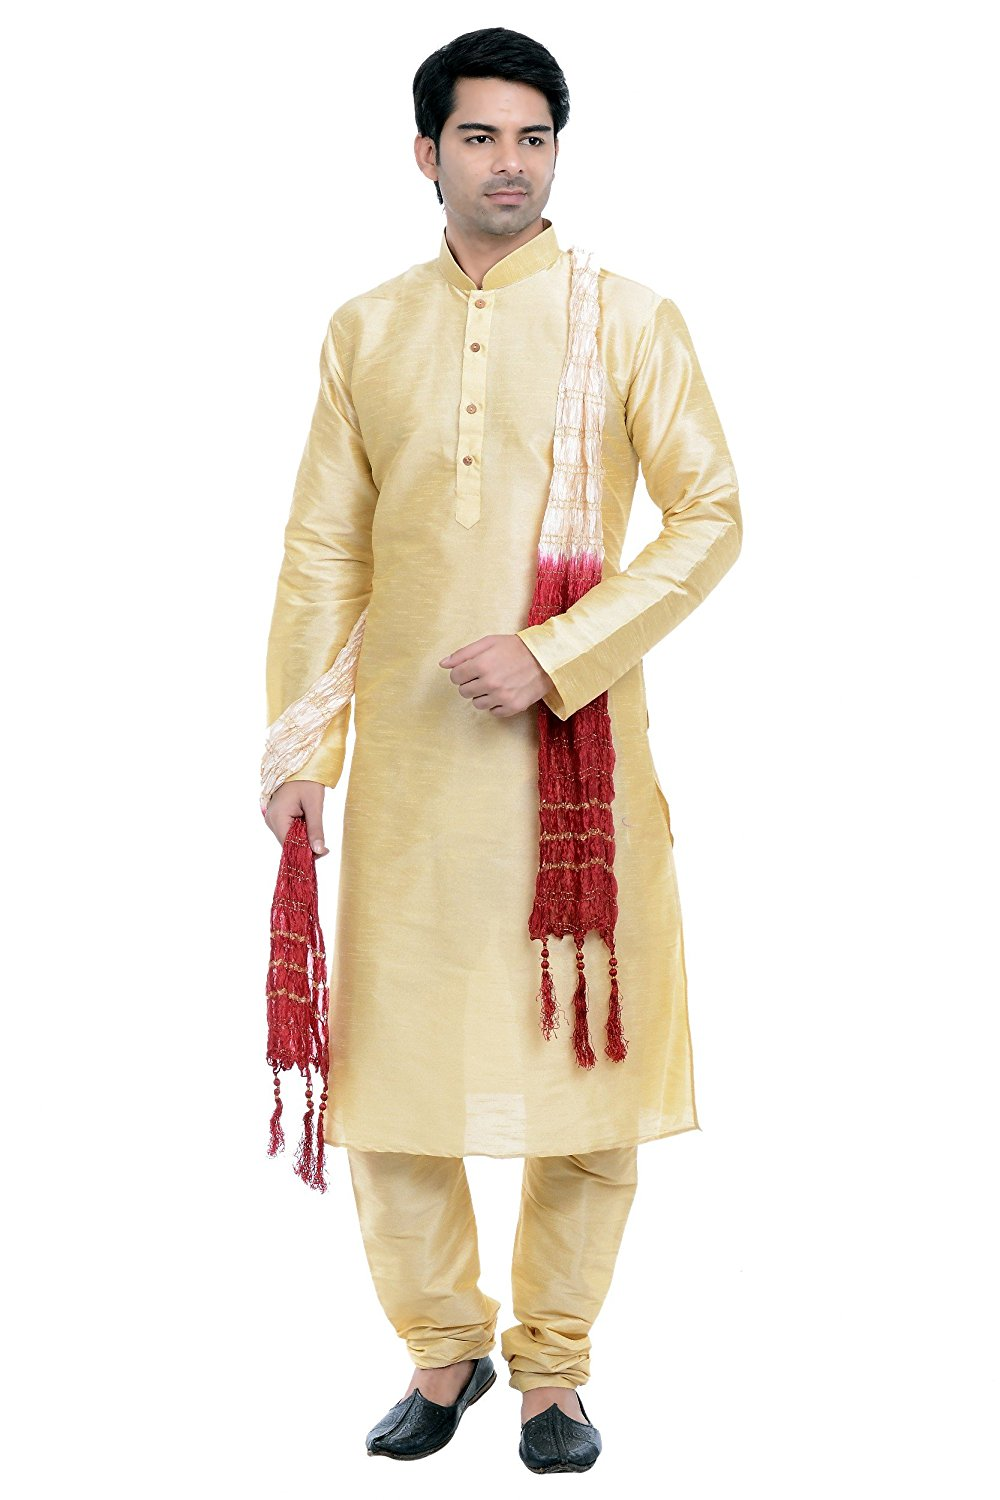 91d8a96e21 Diwali Online Shopping: Best Traditional & Ethnic Wear For Men ...